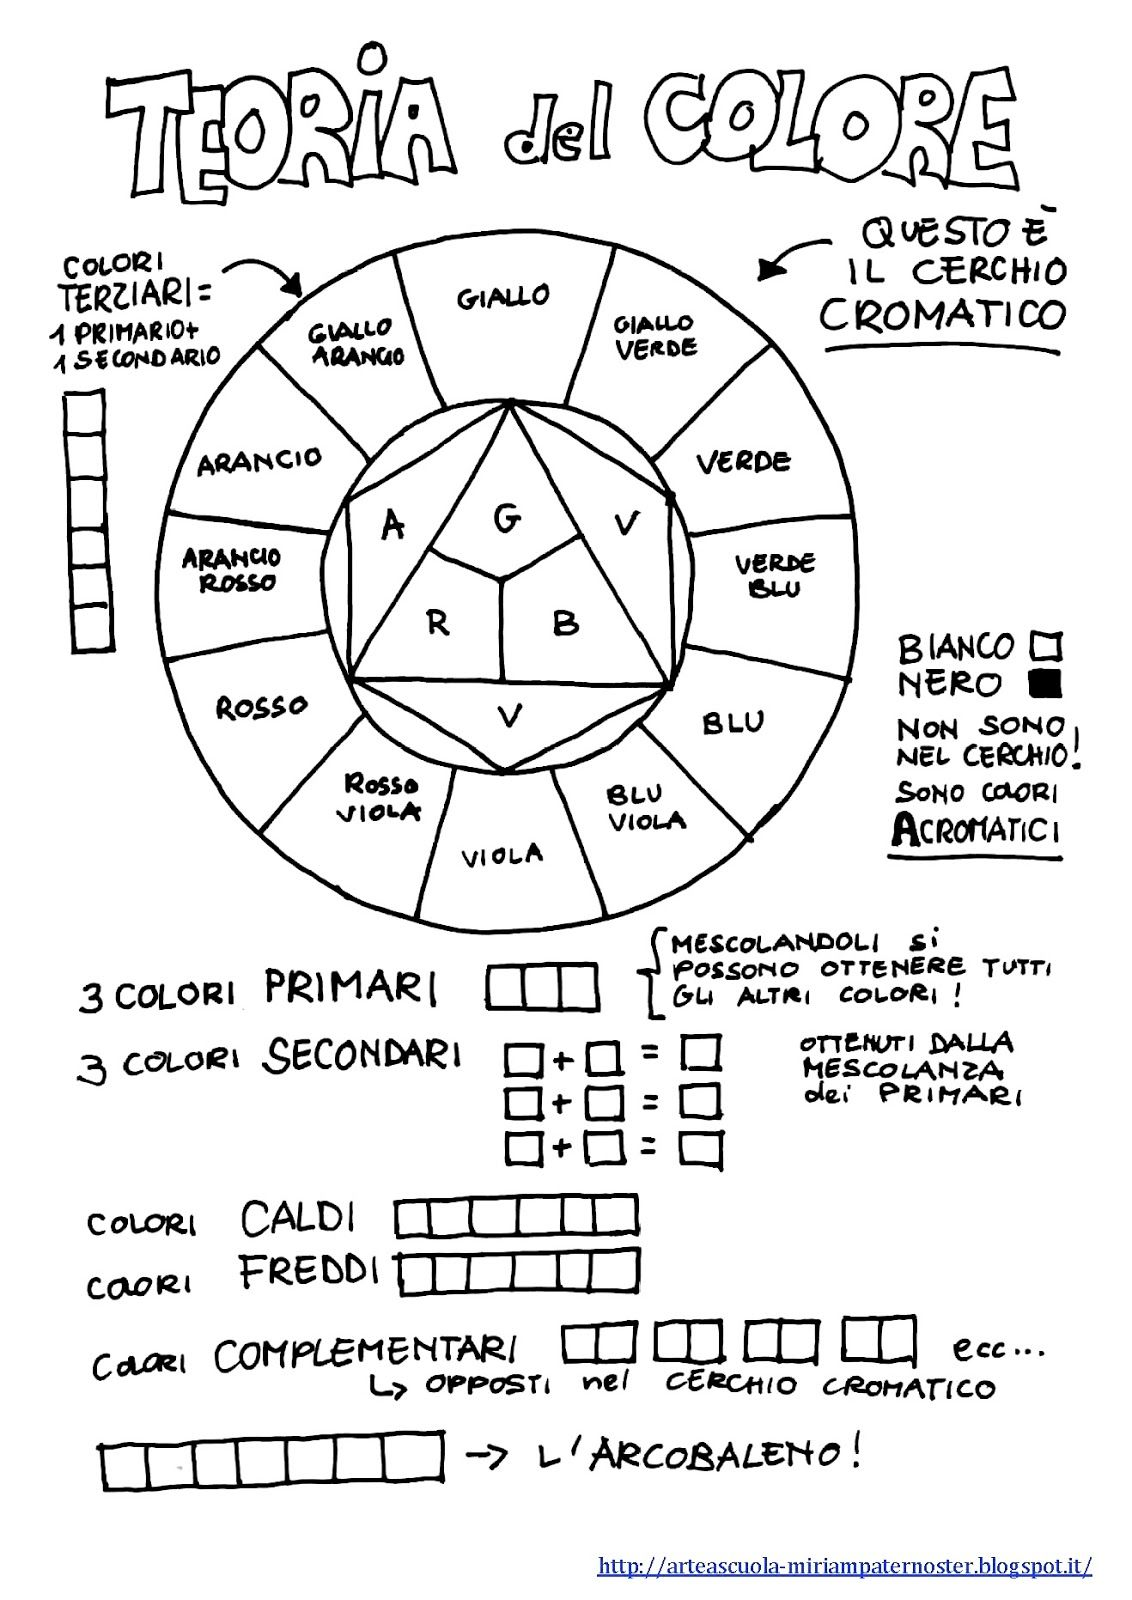 Color wheel worksheets for elementary - Arteascuola Color Wheel Printable Worksheet In Italian Language